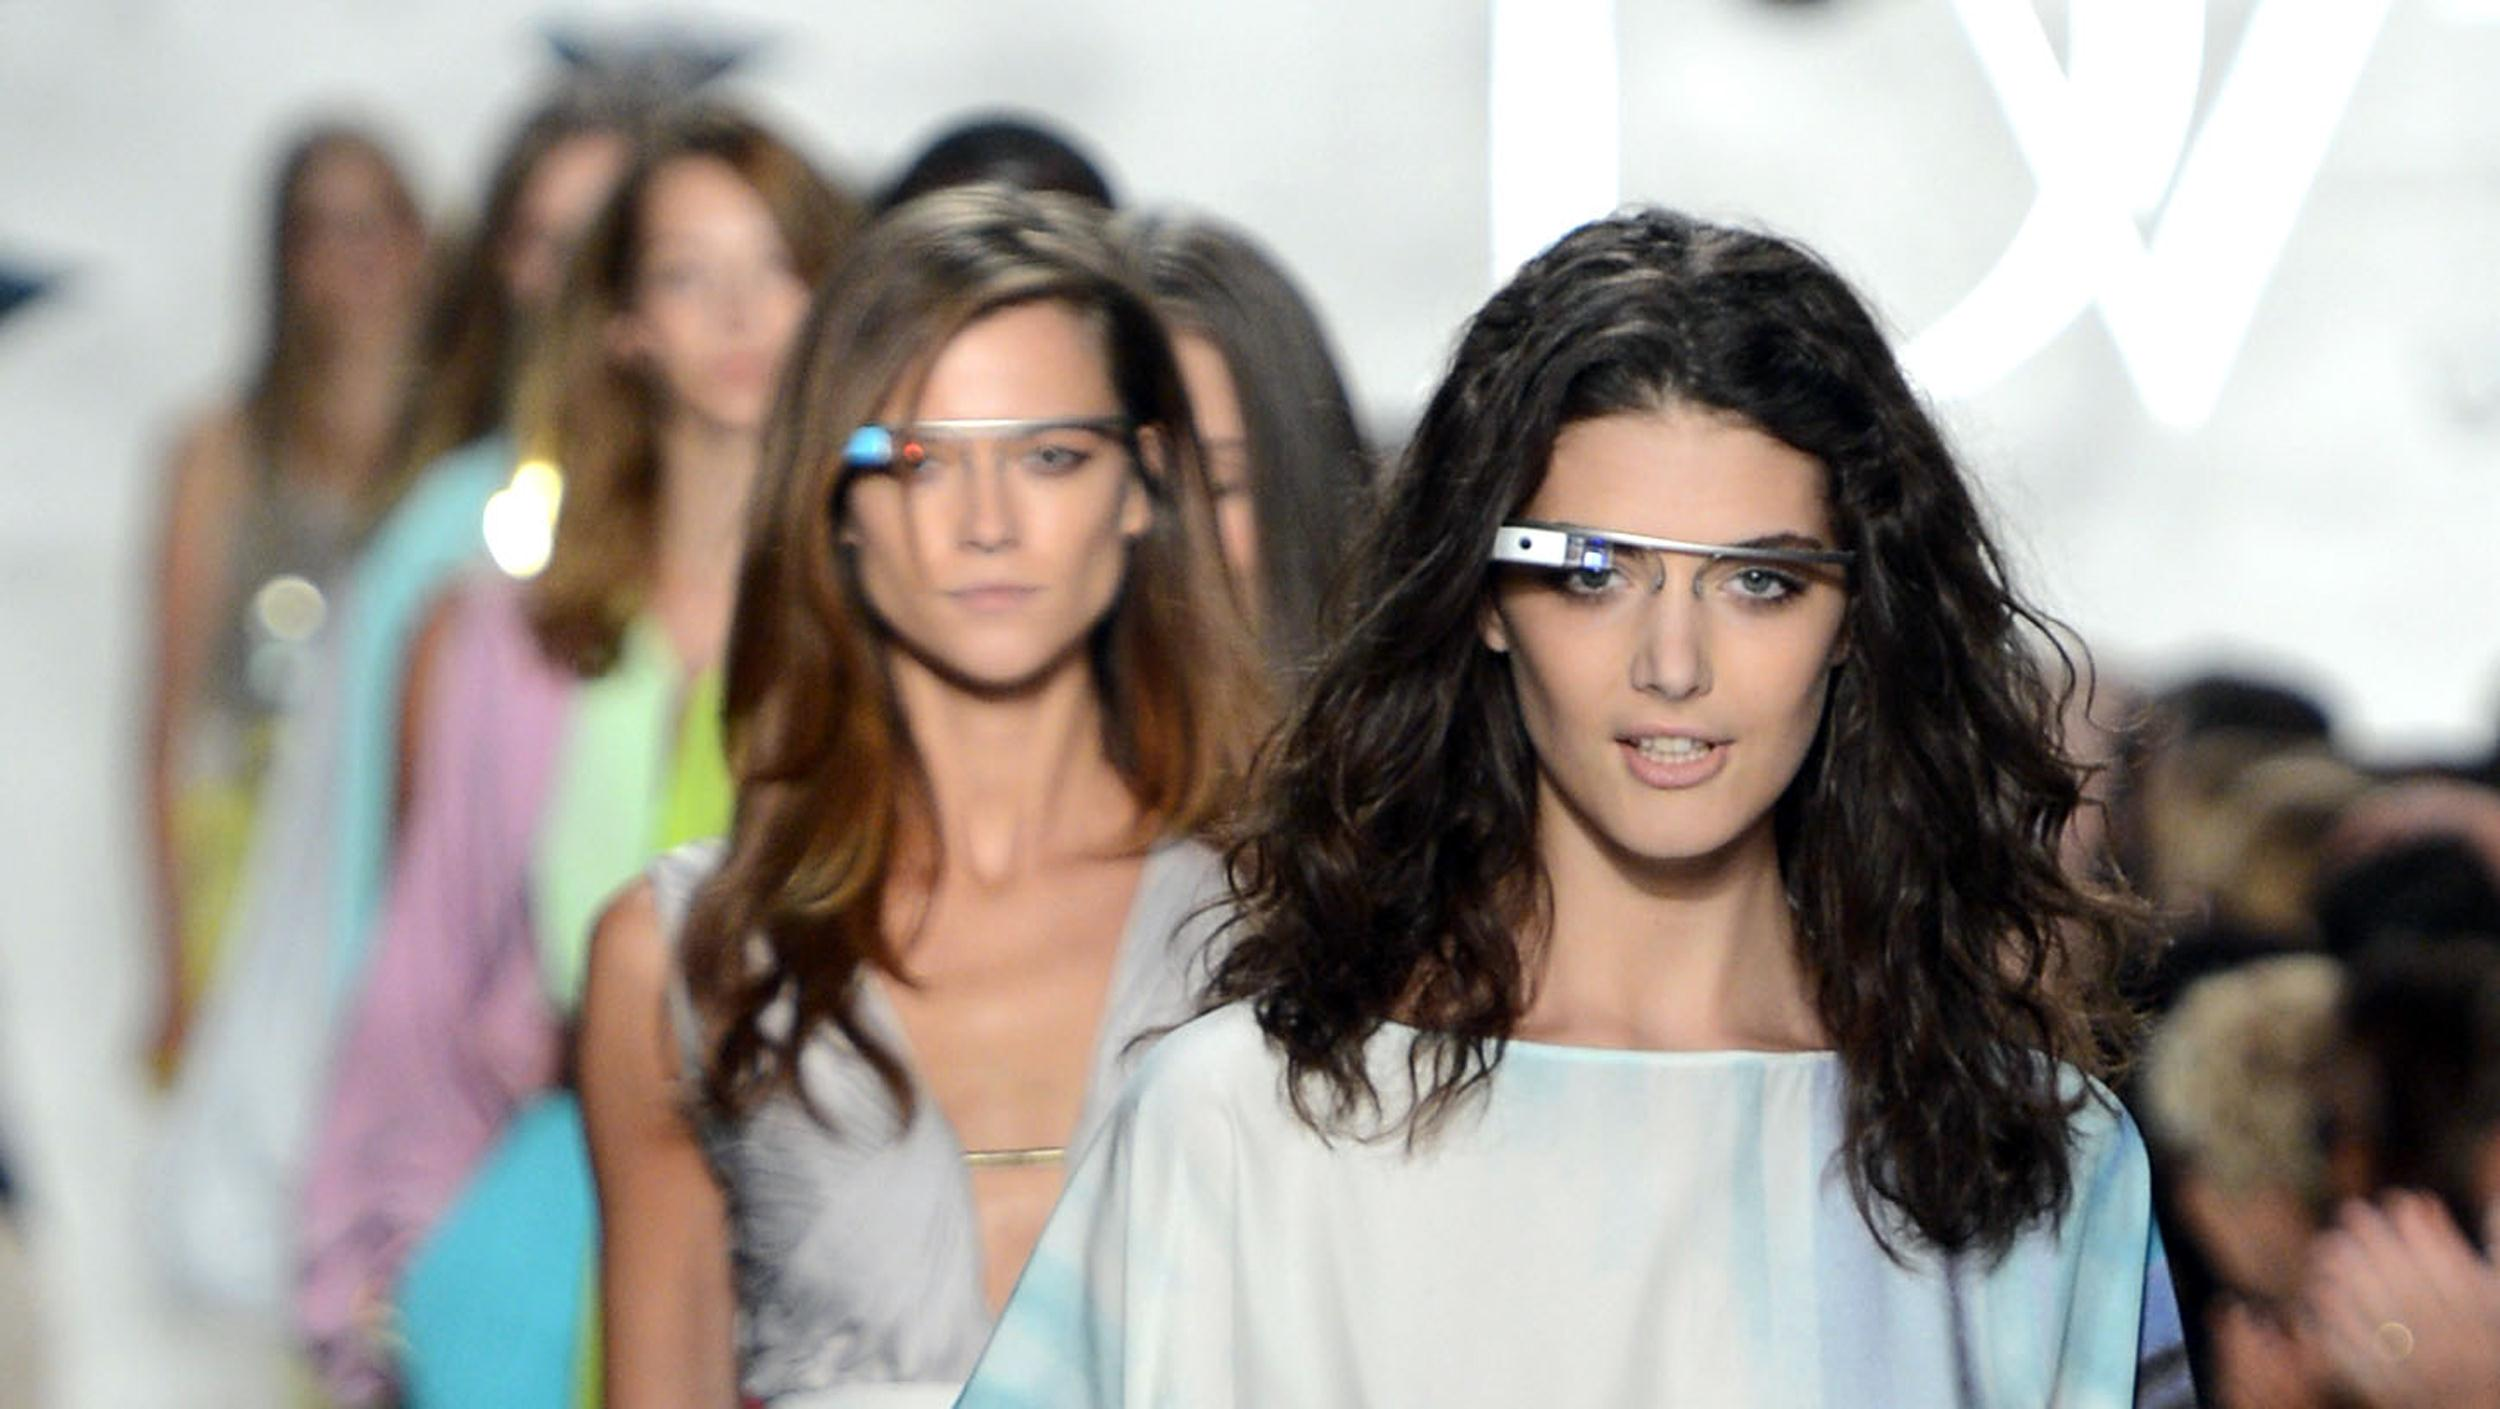 Image: Models walk the runway at the Diane Von Furstenberg Spring 2013 fashion show